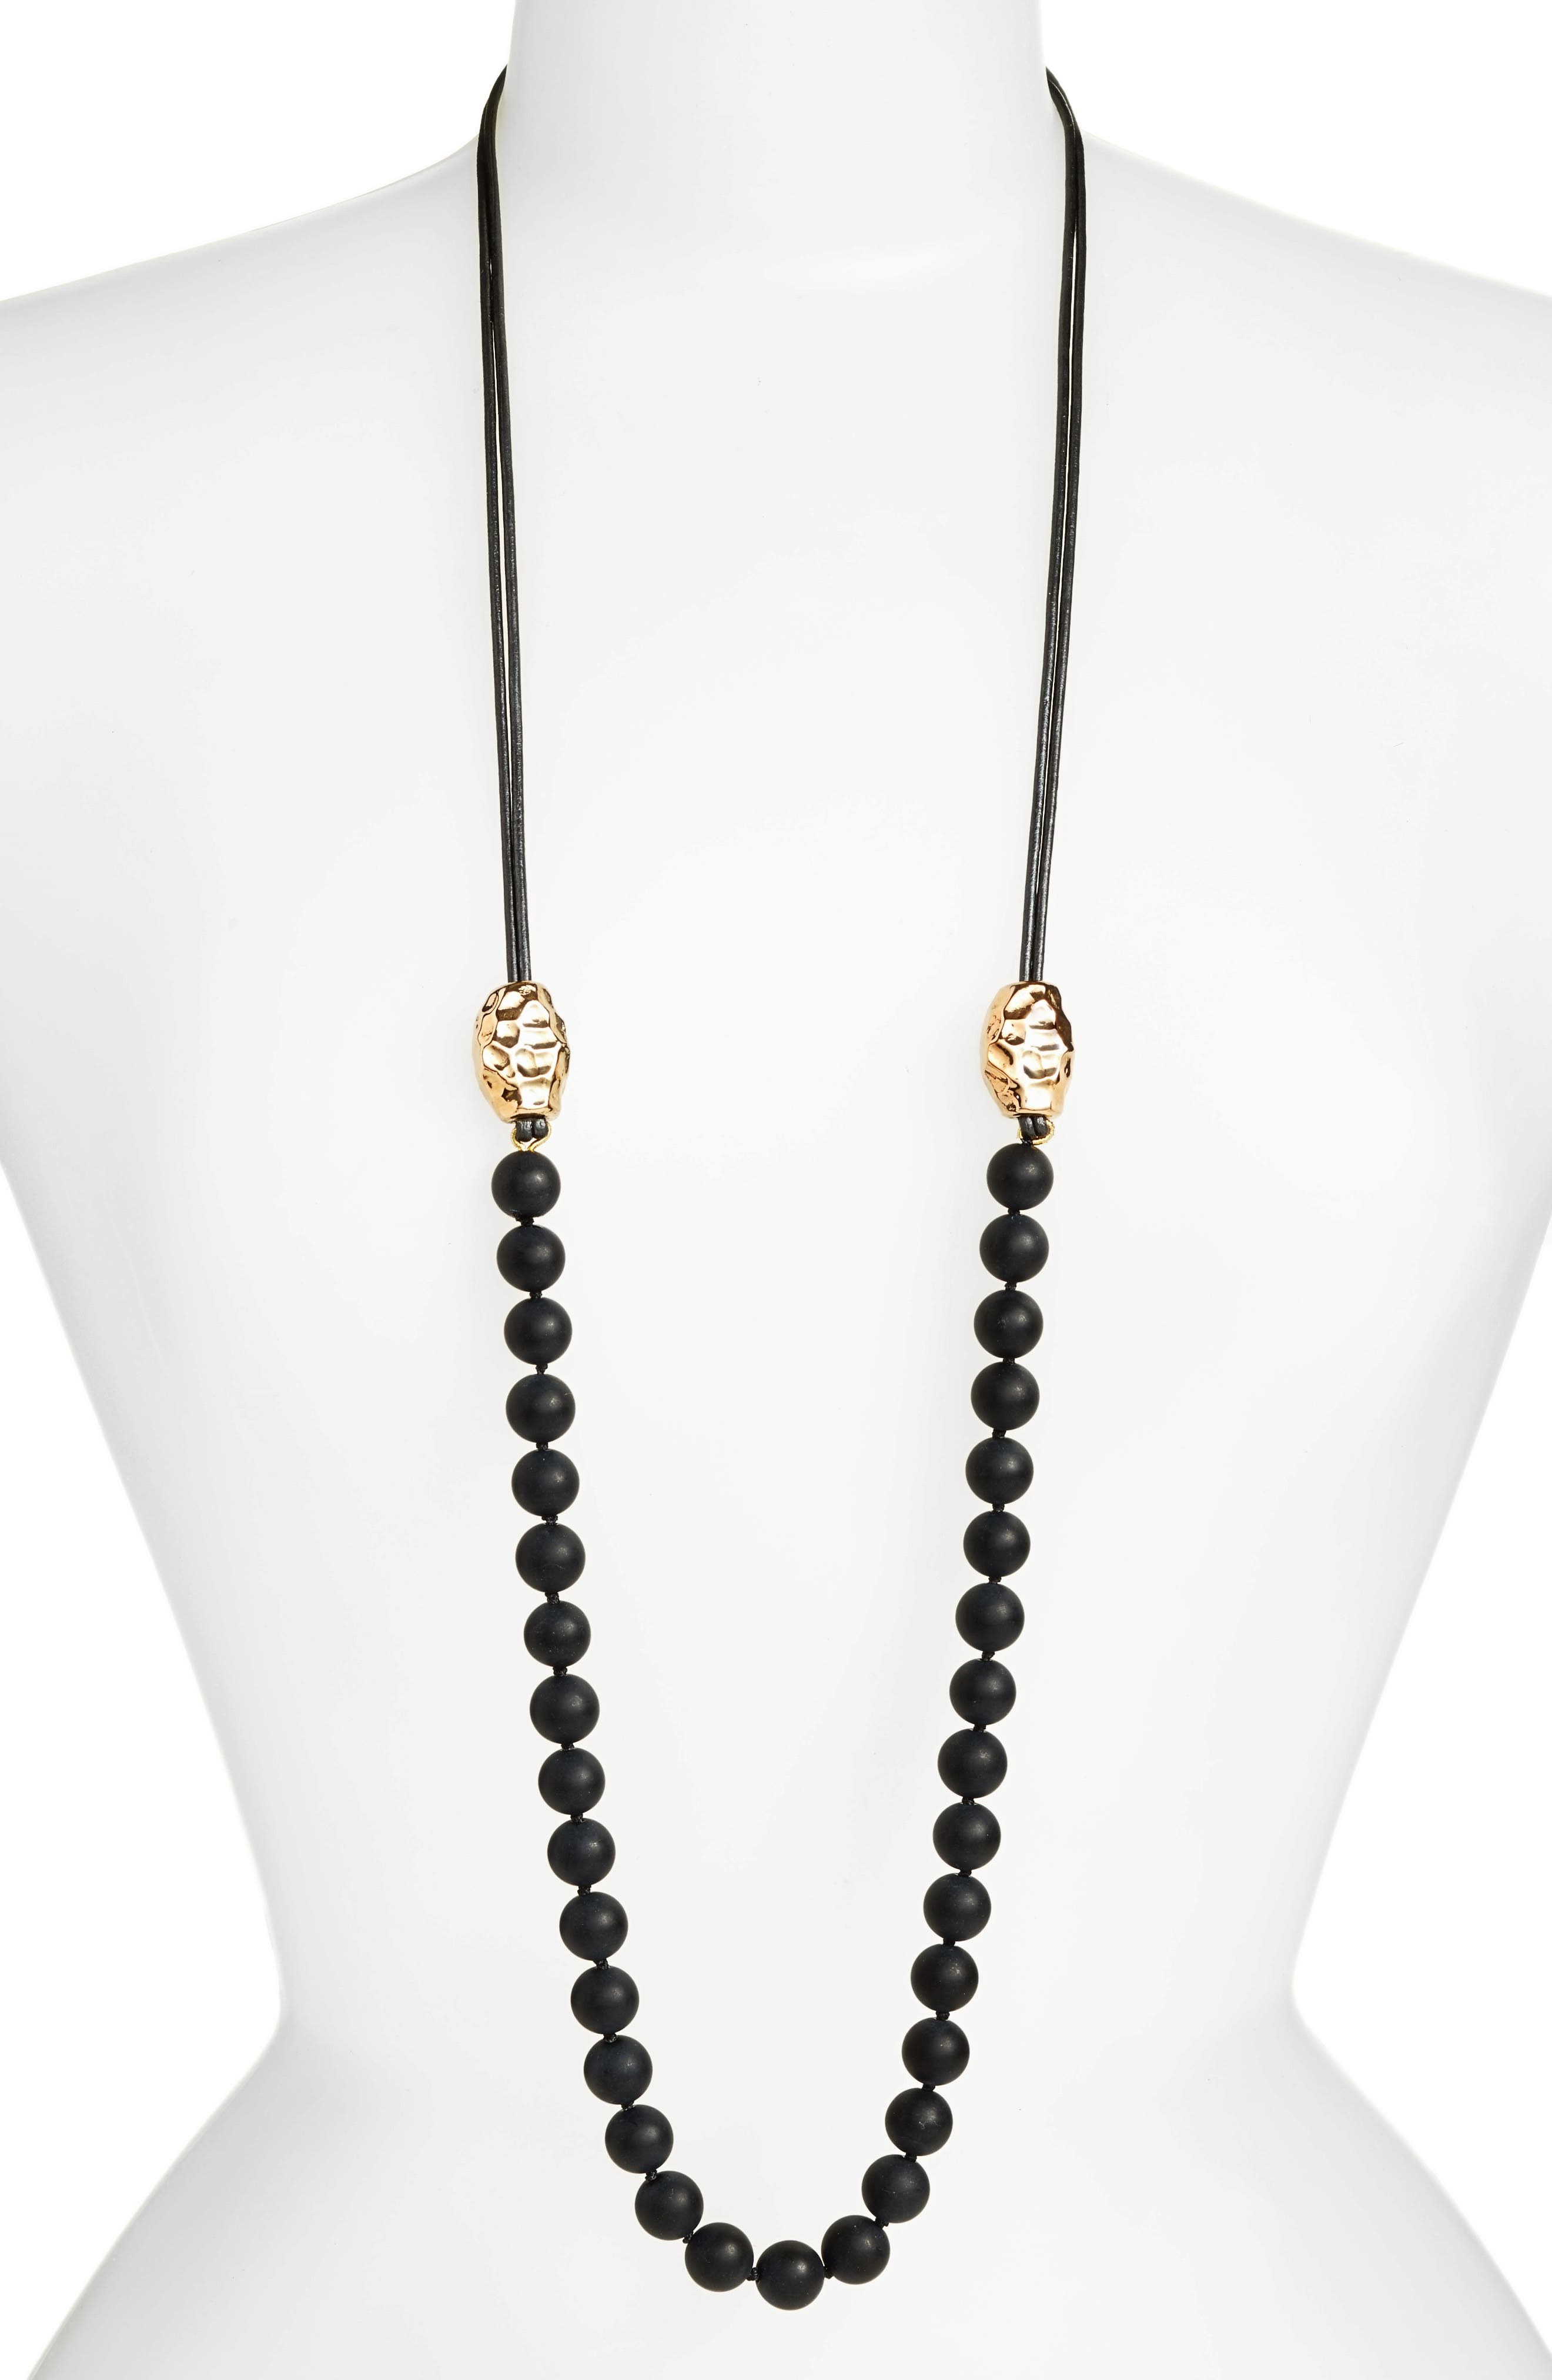 Vermeil Bead Matte Onyx Necklace,                             Main thumbnail 1, color,                             Black/ Gold